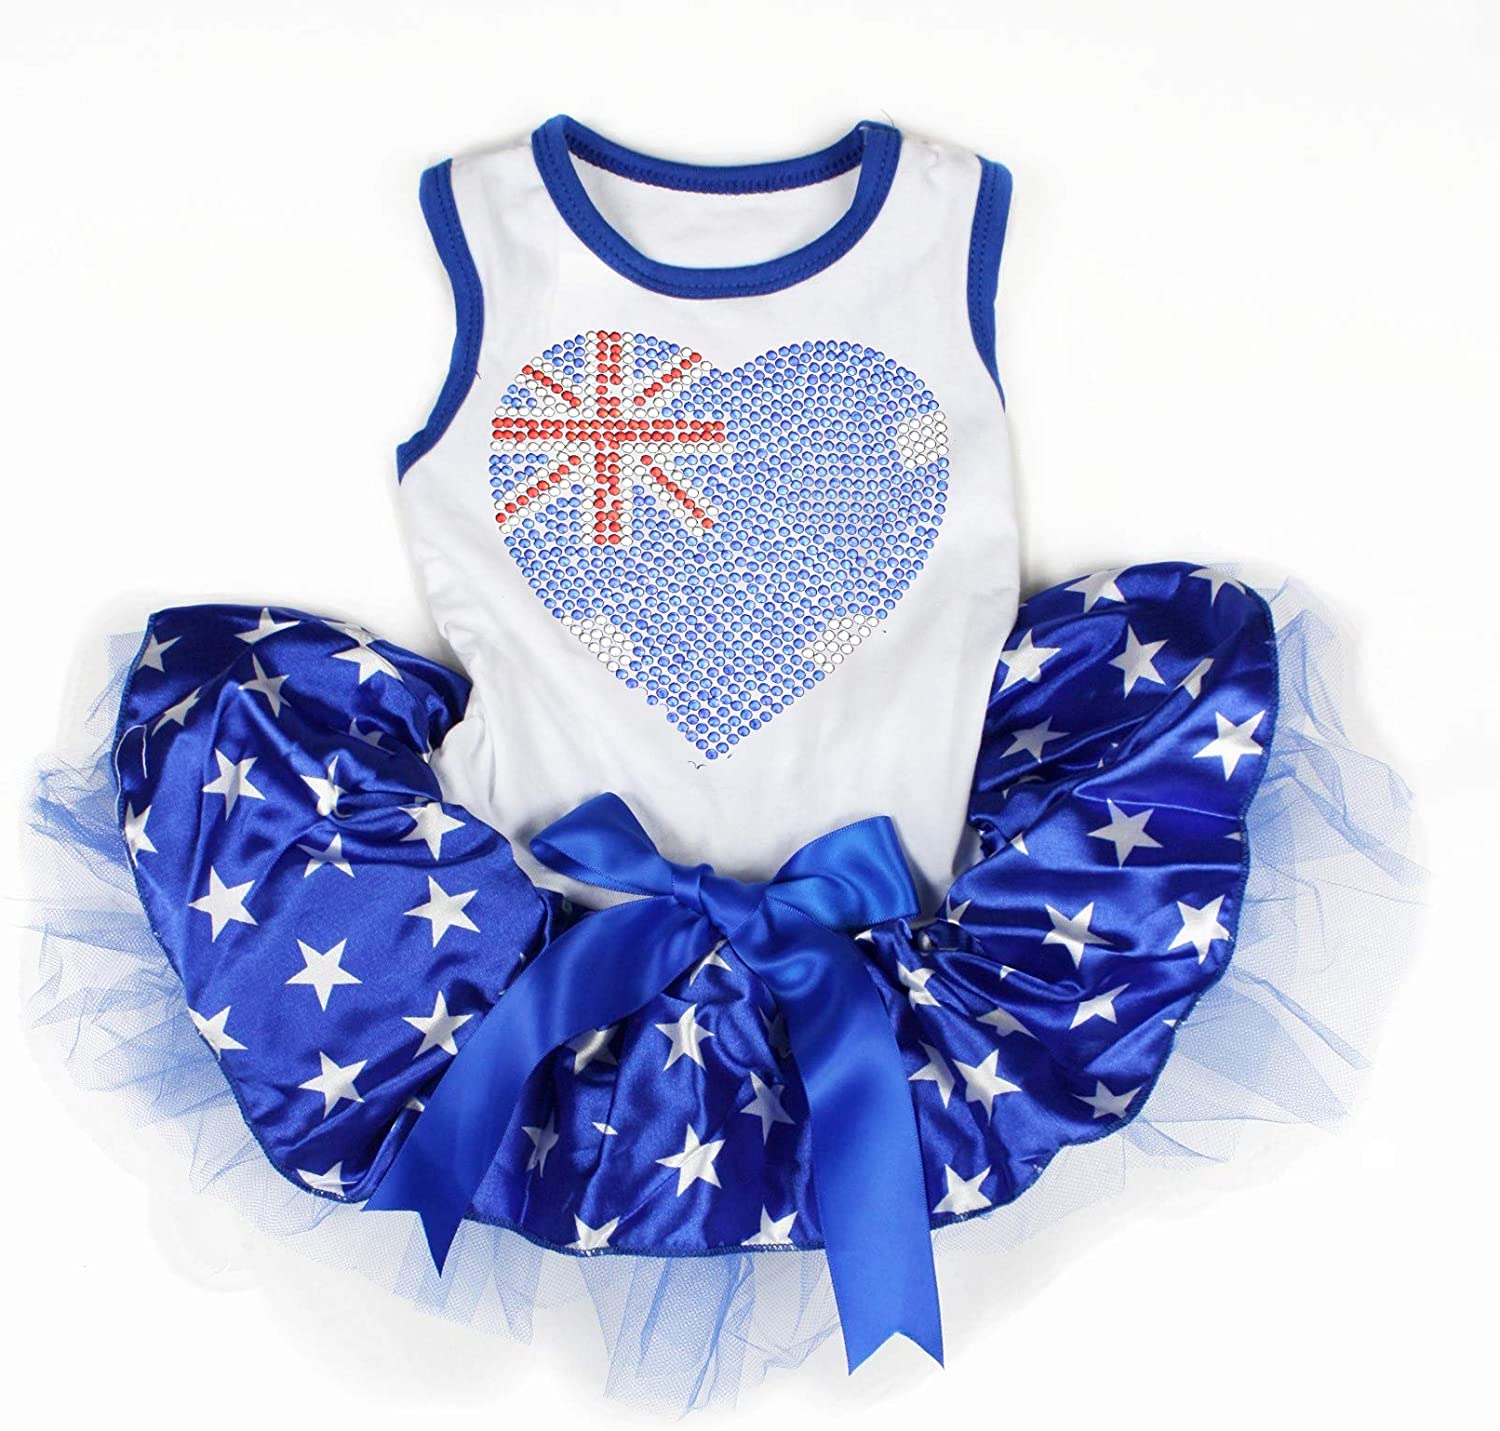 Petitebella National Theme Cotton Shirt Tutu Puppy Dog Dress